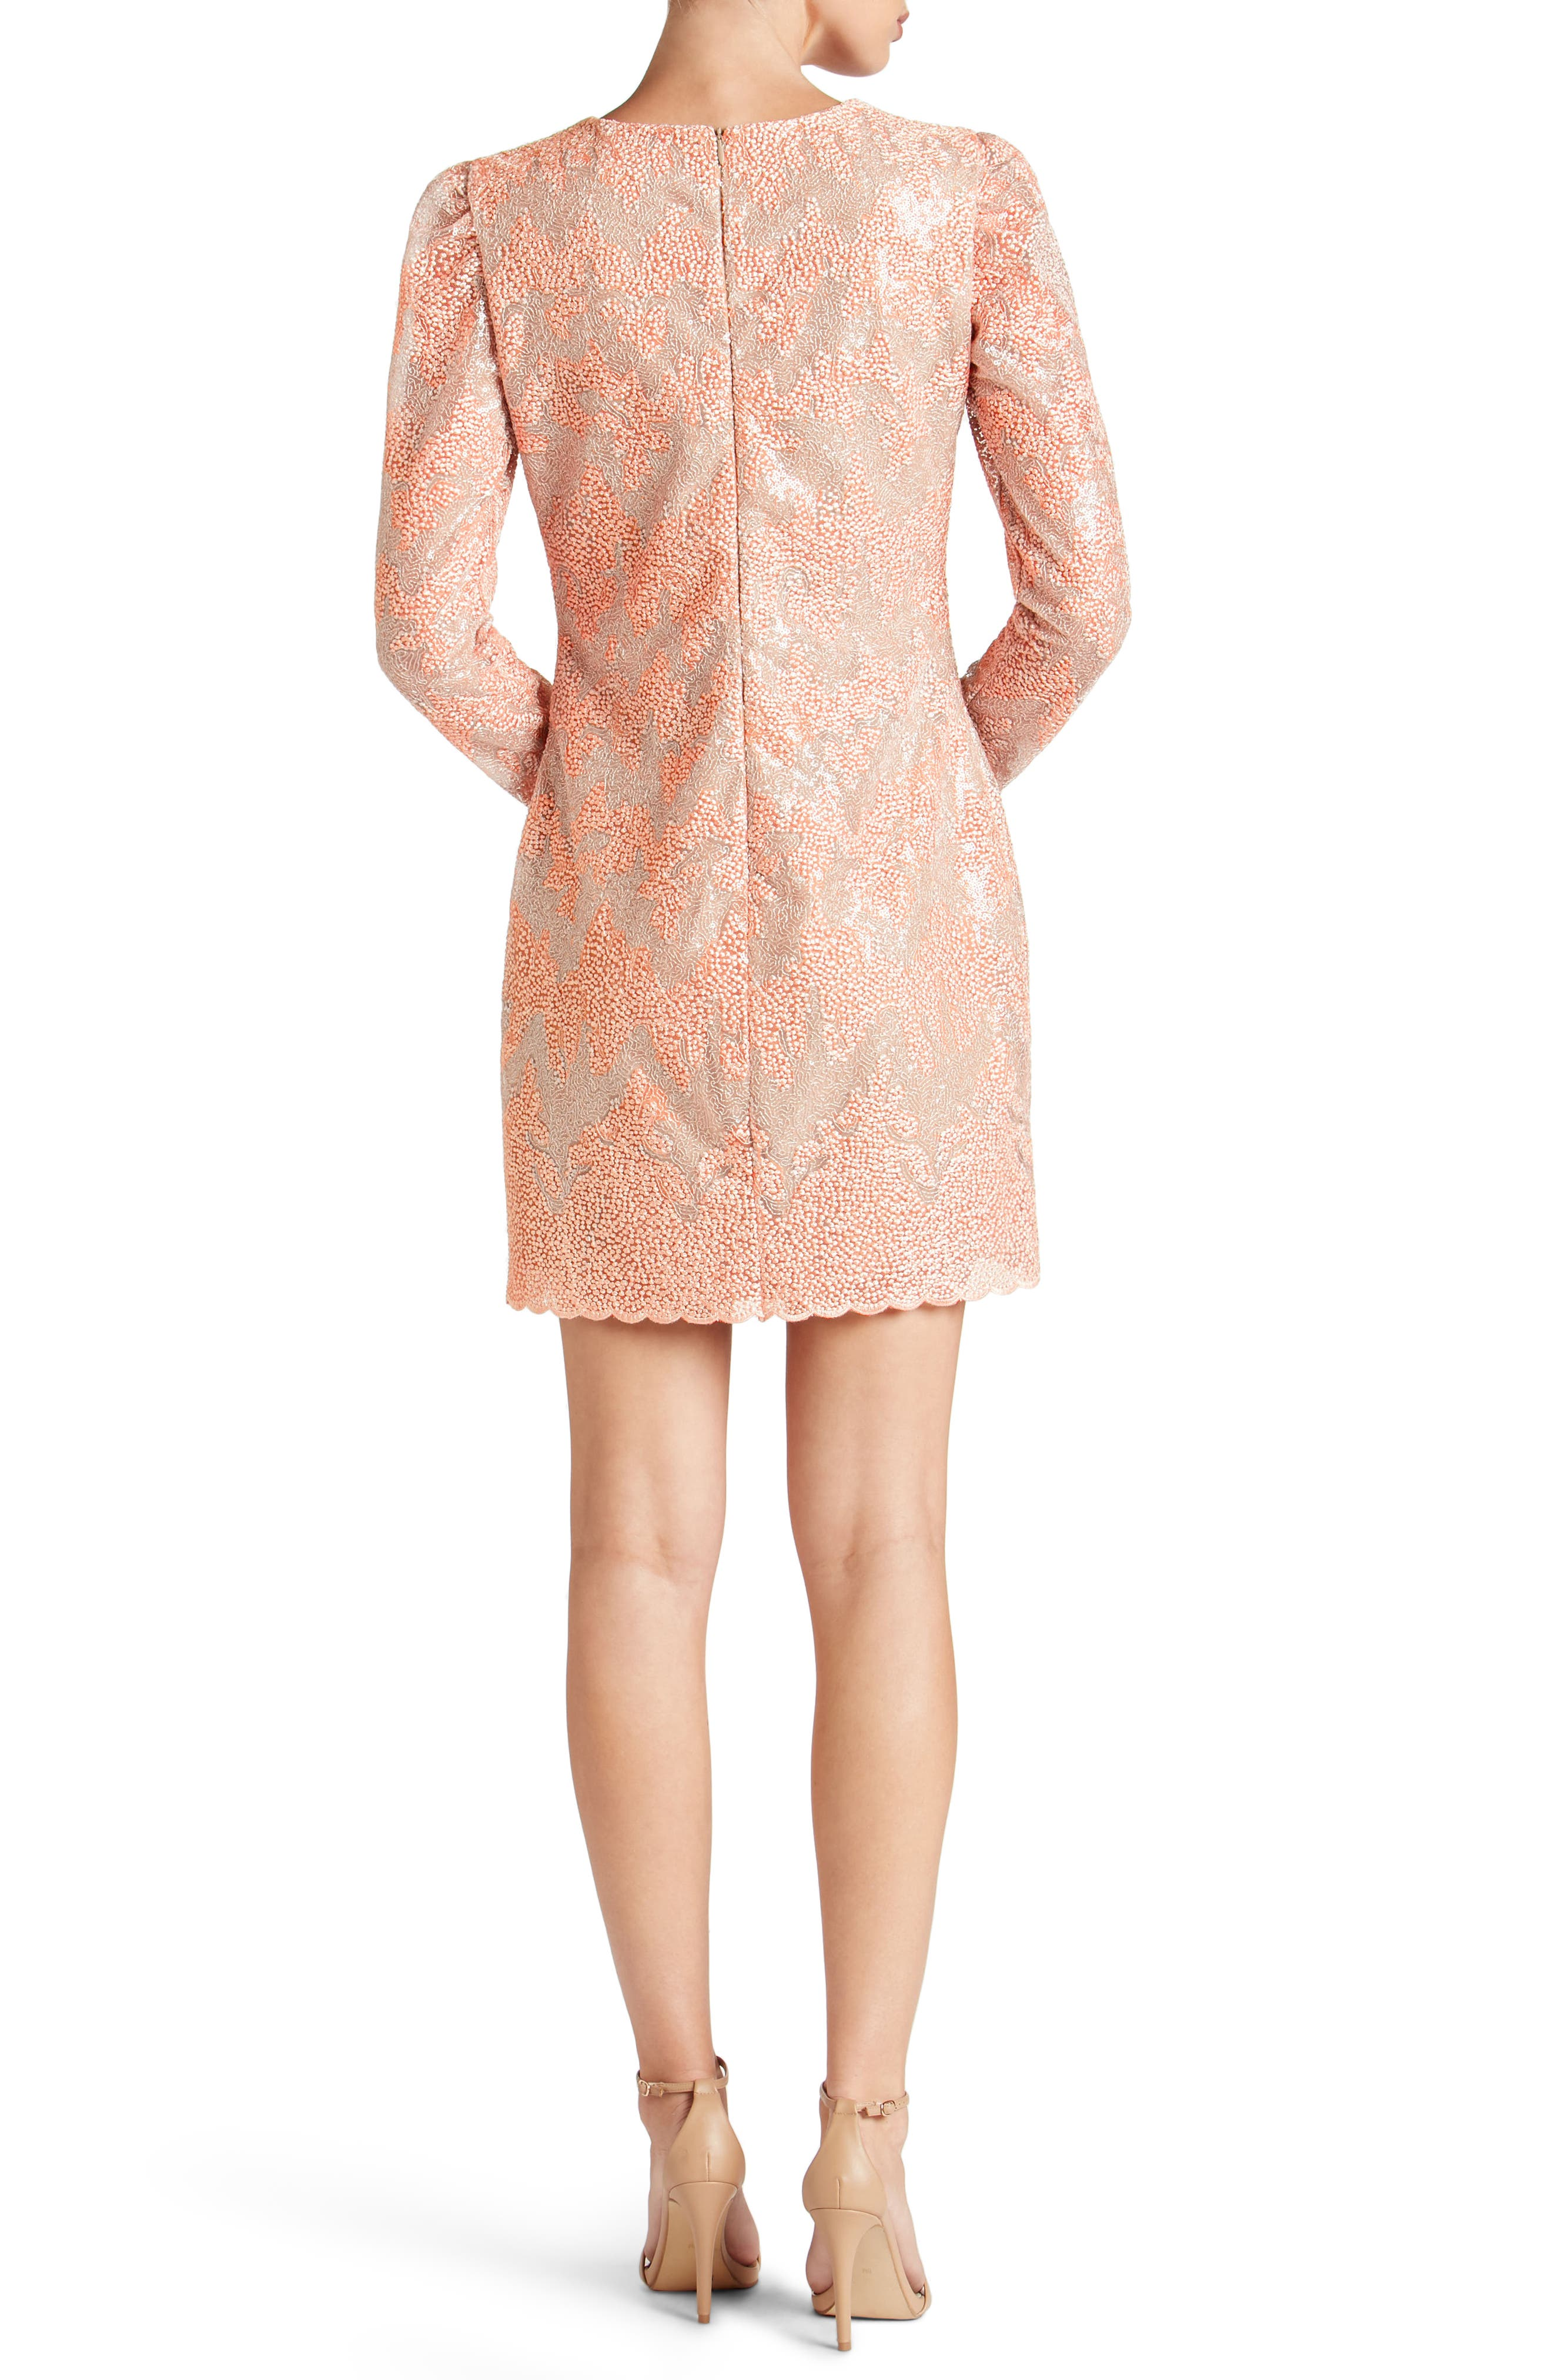 Aubry Sequin Embellished Shift Dress,                             Alternate thumbnail 2, color,                             Blush